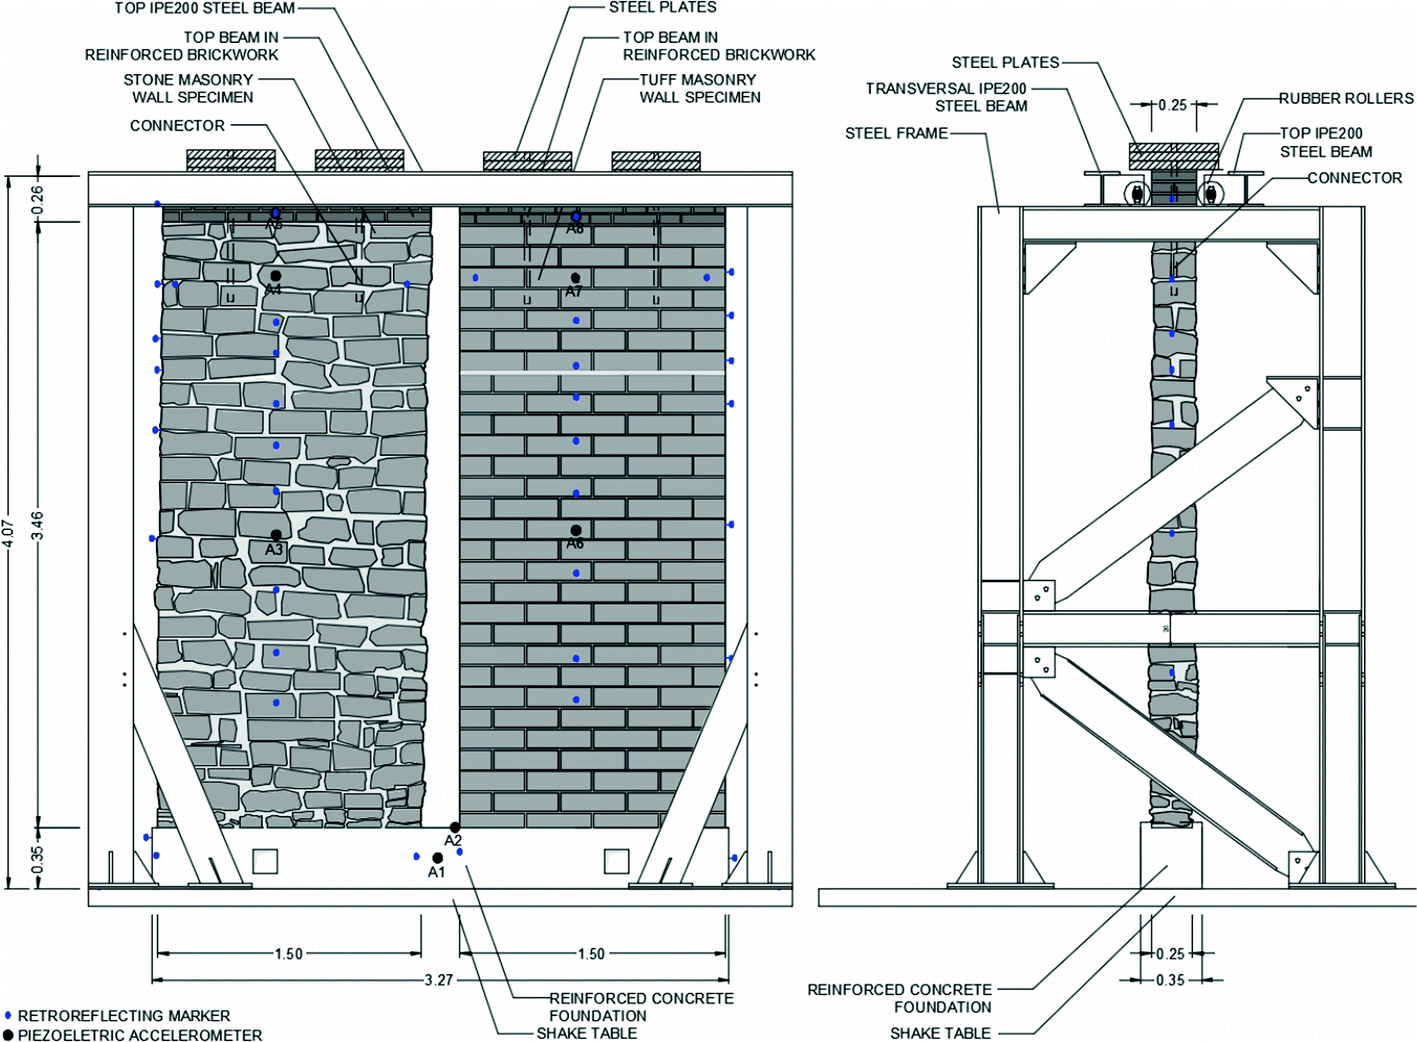 Seismic Retrofitting of Masonry with Fabric Reinforced